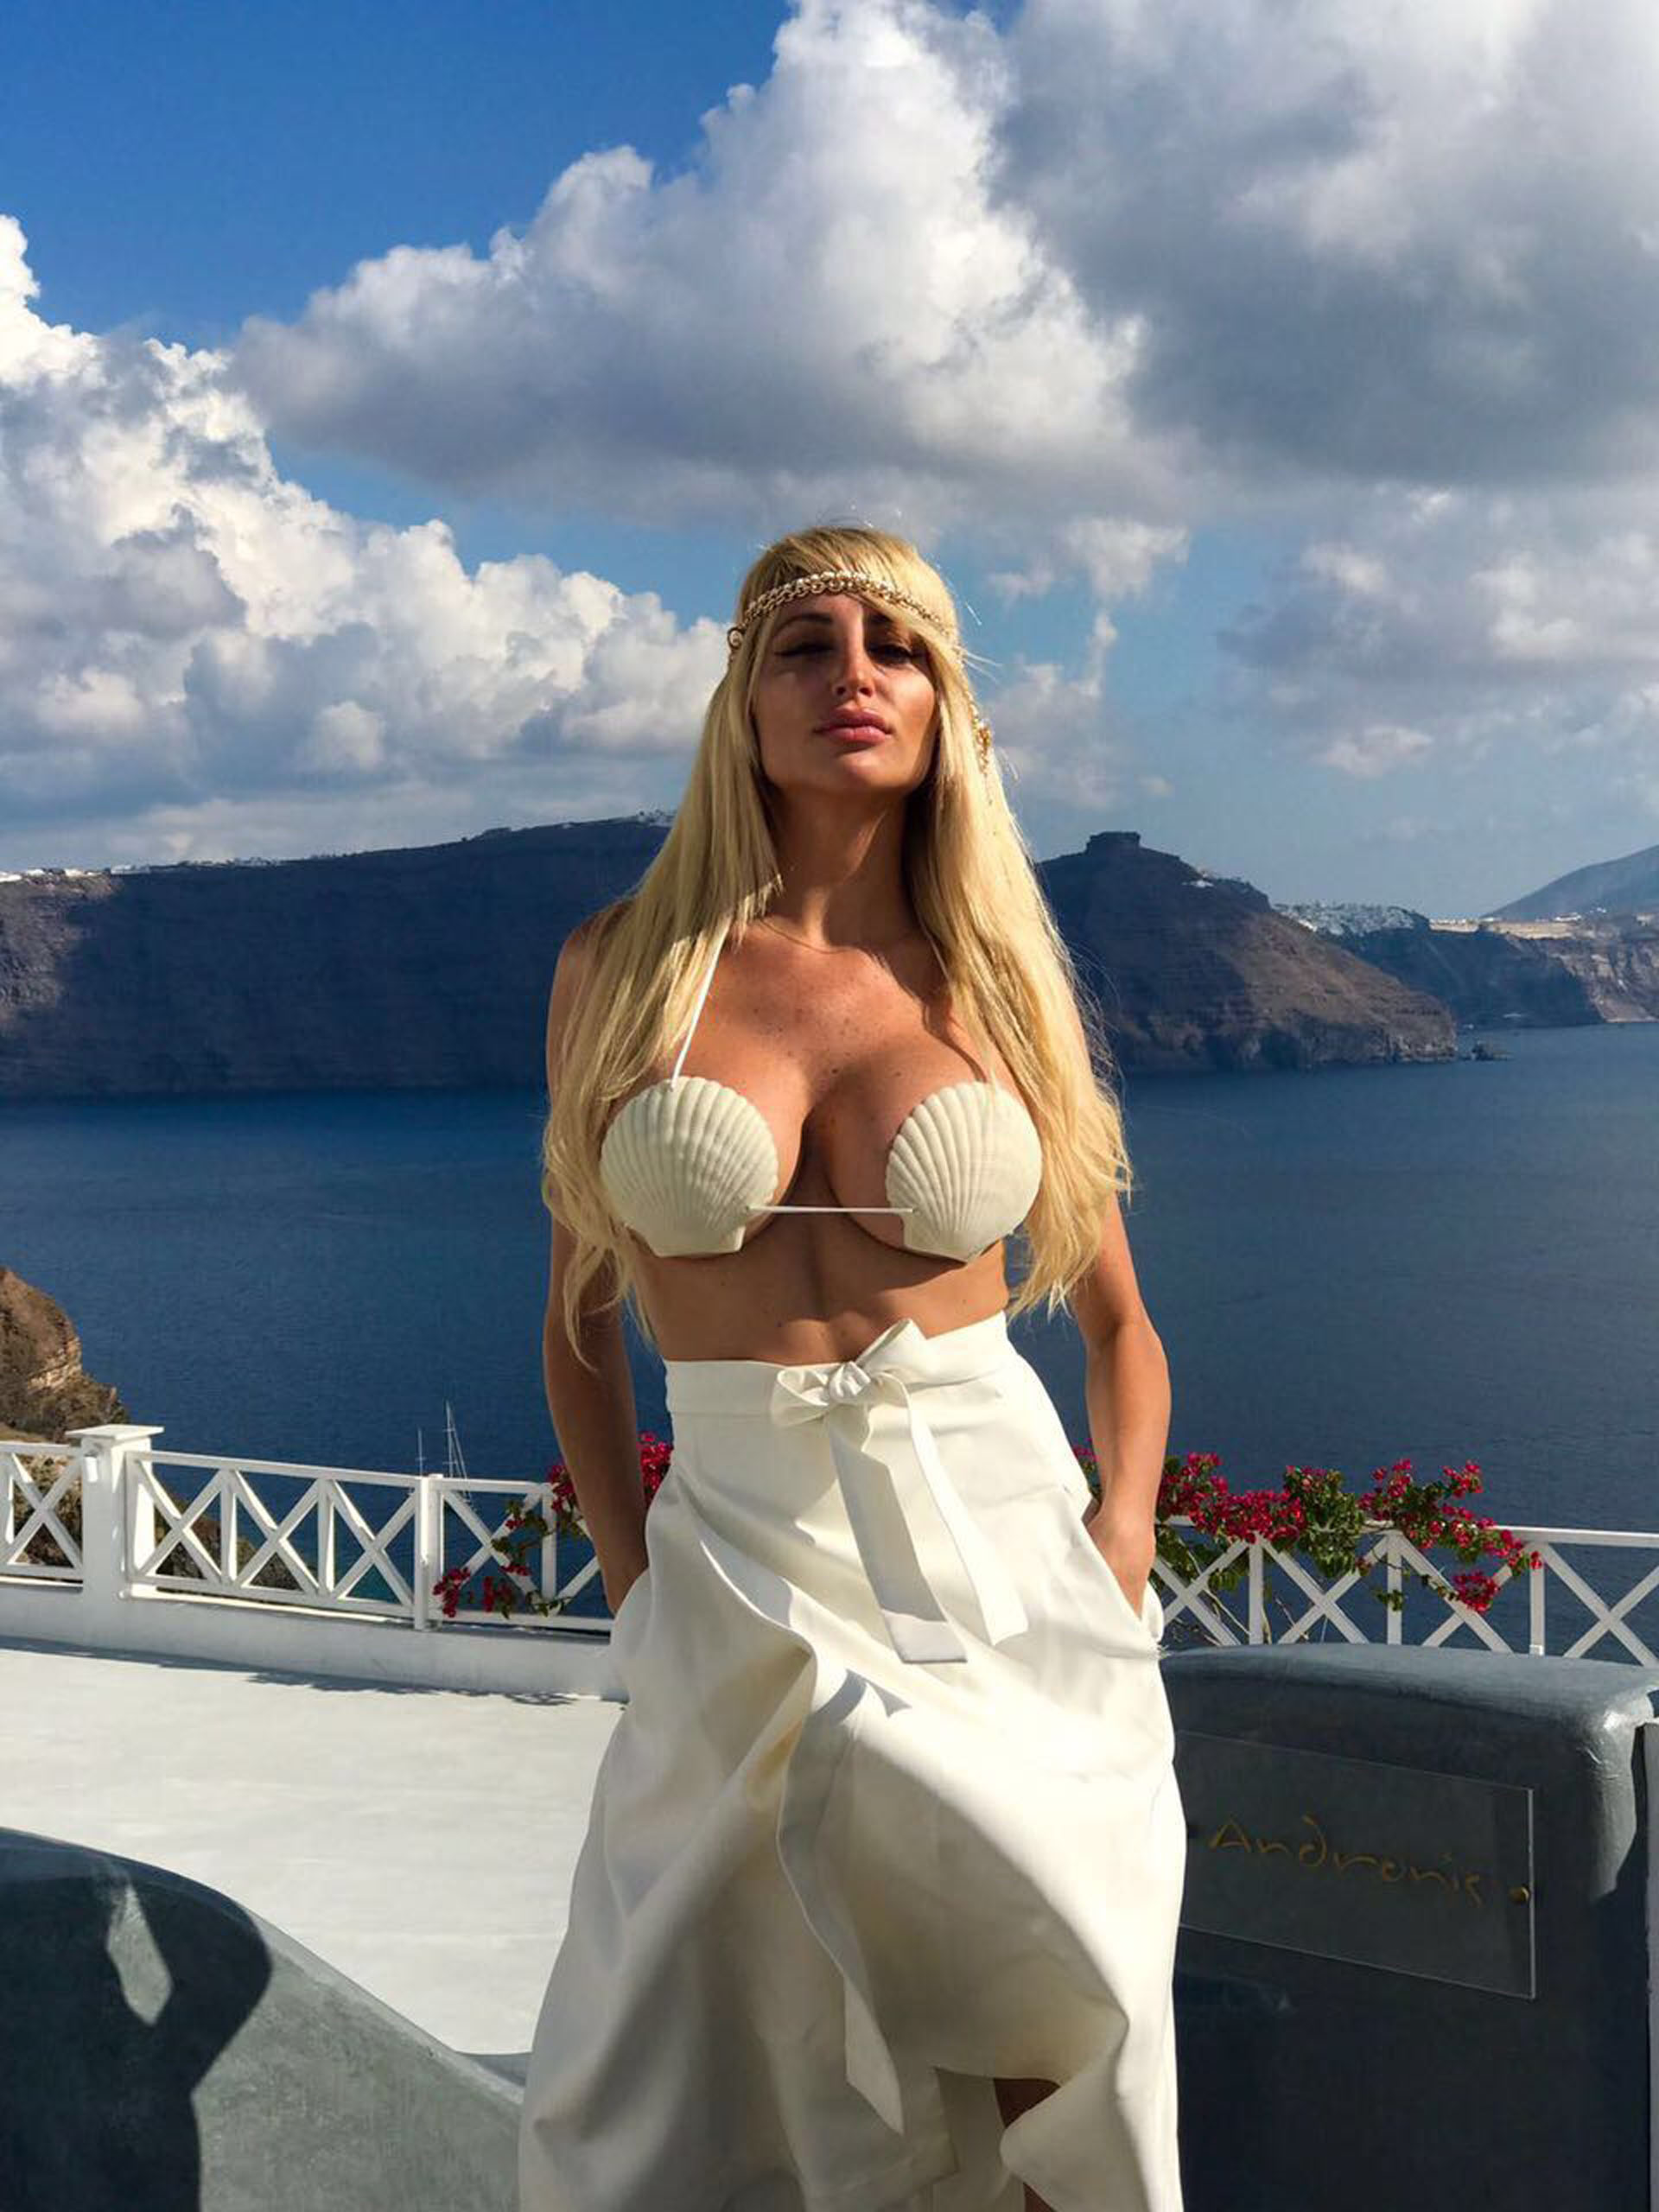 Fotos Vicky Xipolitakis nudes (25 images), Boobs